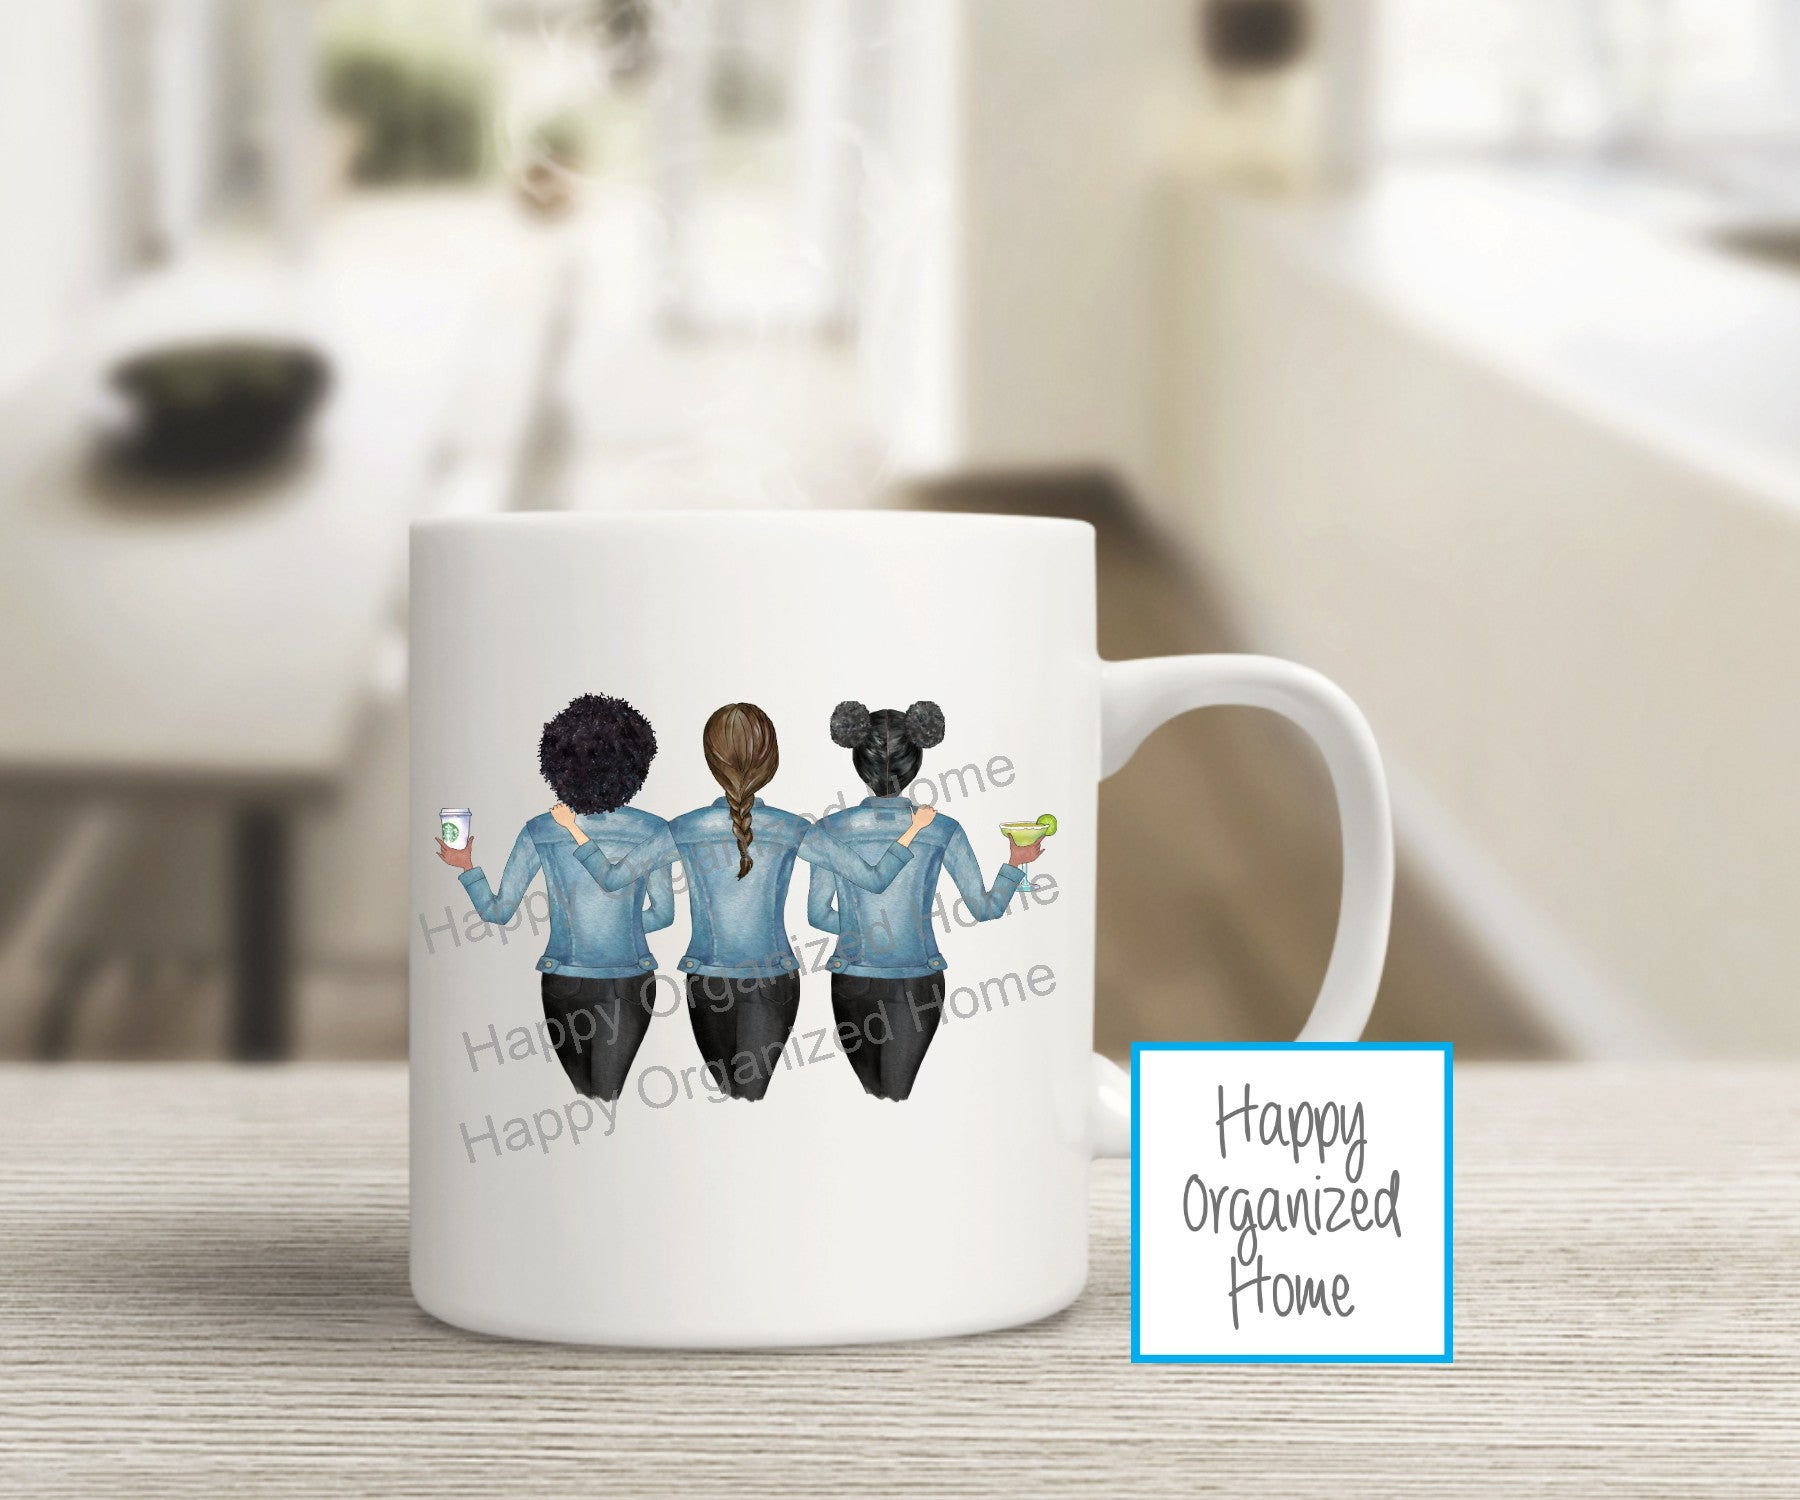 Best Friends Set of 3 - Personalized Mugs and Tumblers